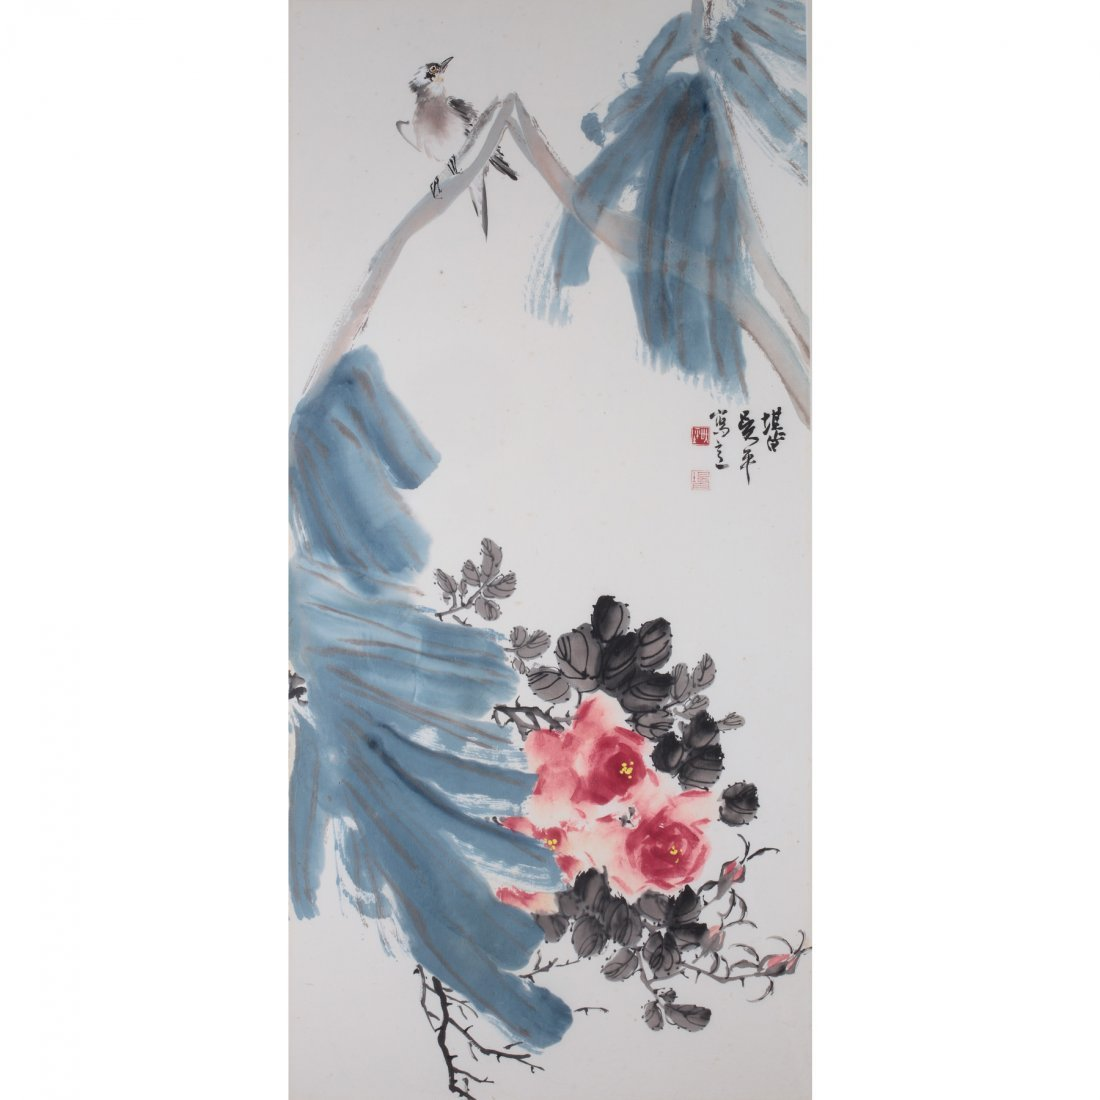 FLOWER AND BIRD BY WU PING